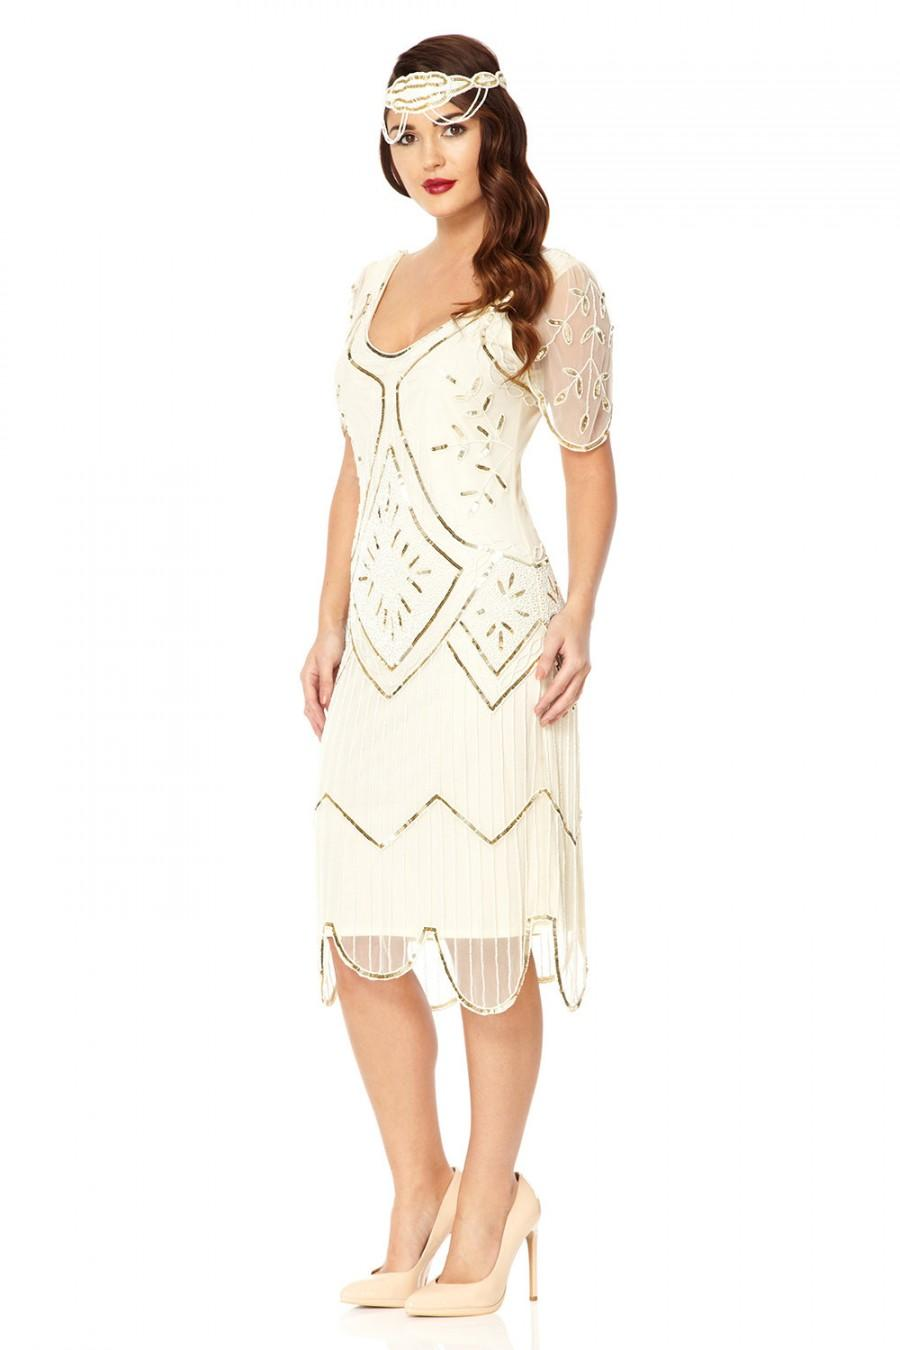 زفاف - US10 UK14 AUS14 EU42 Ivy White Flapper Wedding Dress 1920s inspired Gatsby Charleston Downton Abbey Art Deco Bridal shower Rehearsal dinner